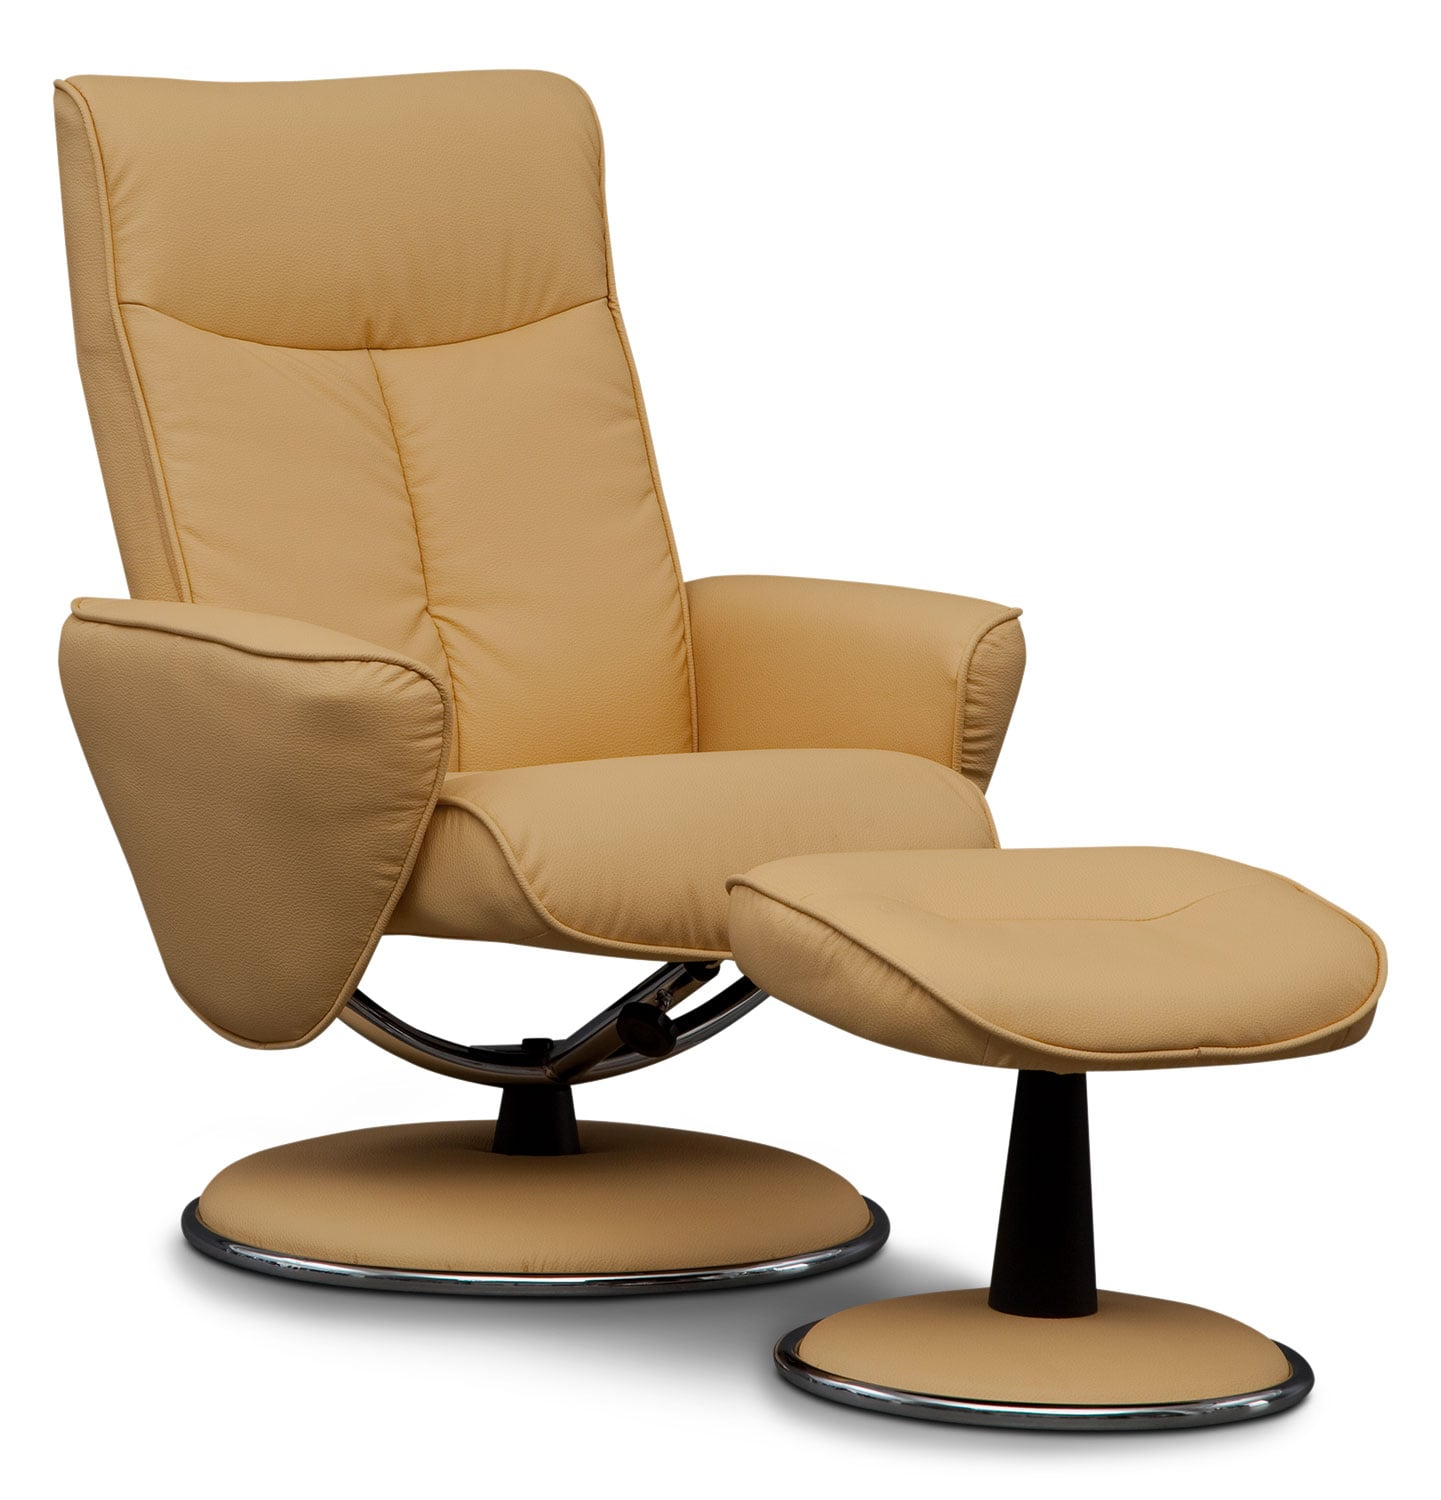 Tracer Reclining Chair and Ottoman - Yellow